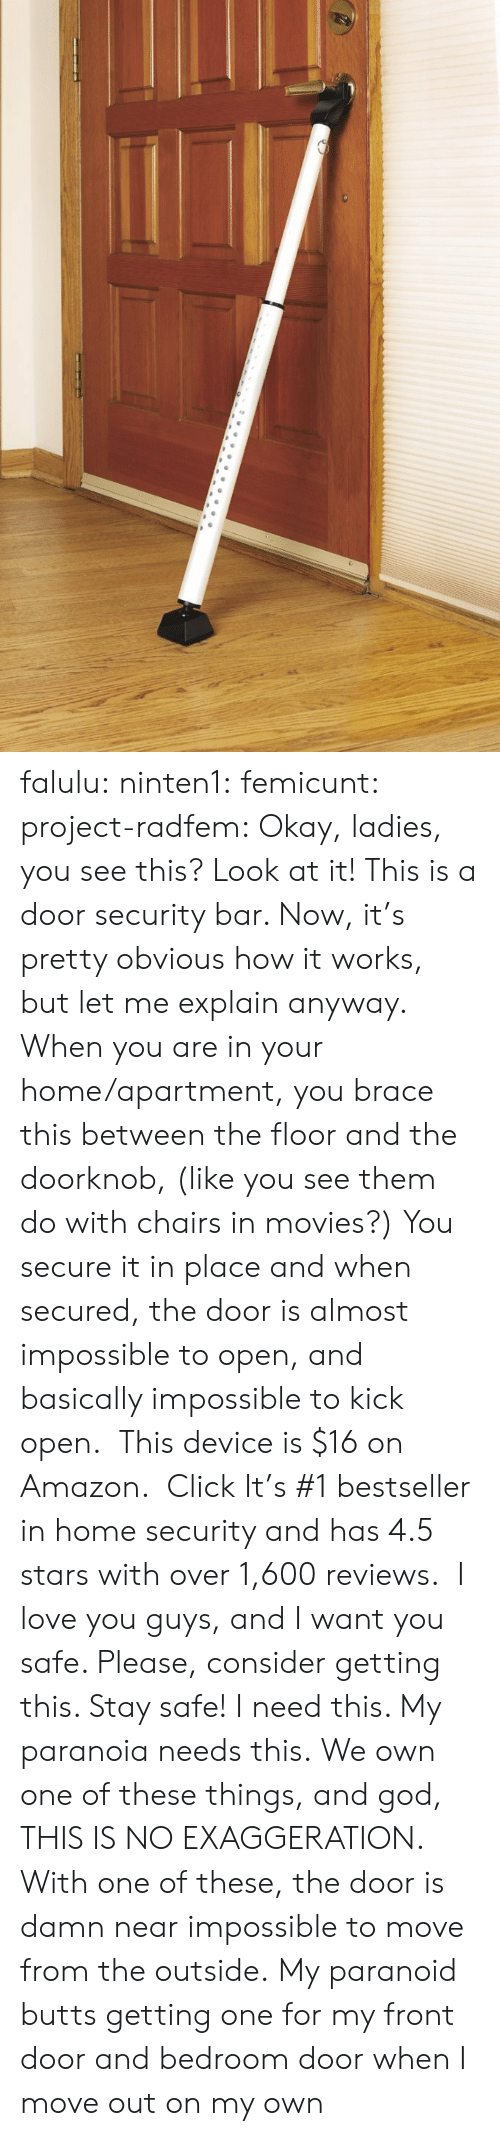 home security: falulu: ninten1:  femicunt:  project-radfem:  Okay, ladies, you see this? Look at it! This is a door security bar. Now, it's pretty obvious how it works, but let me explain anyway. When you are in your home/apartment, you brace this between the floor and the doorknob, (like you see them do with chairs in movies?) You secure it in place and when secured, the door is almost impossible to open, and basically impossible to kick open.  This device is $16 on Amazon.  Click It's #1 bestseller in home security and has 4.5 stars with over 1,600 reviews.  I love you guys, and I want you safe. Please, consider getting this. Stay safe!  I need this. My paranoia needs this.  We own one of these things, and god, THIS IS NO EXAGGERATION. With one of these, the door is damn near impossible to move from the outside.  My paranoid butts getting one for my front door and bedroom door when I move out on my own